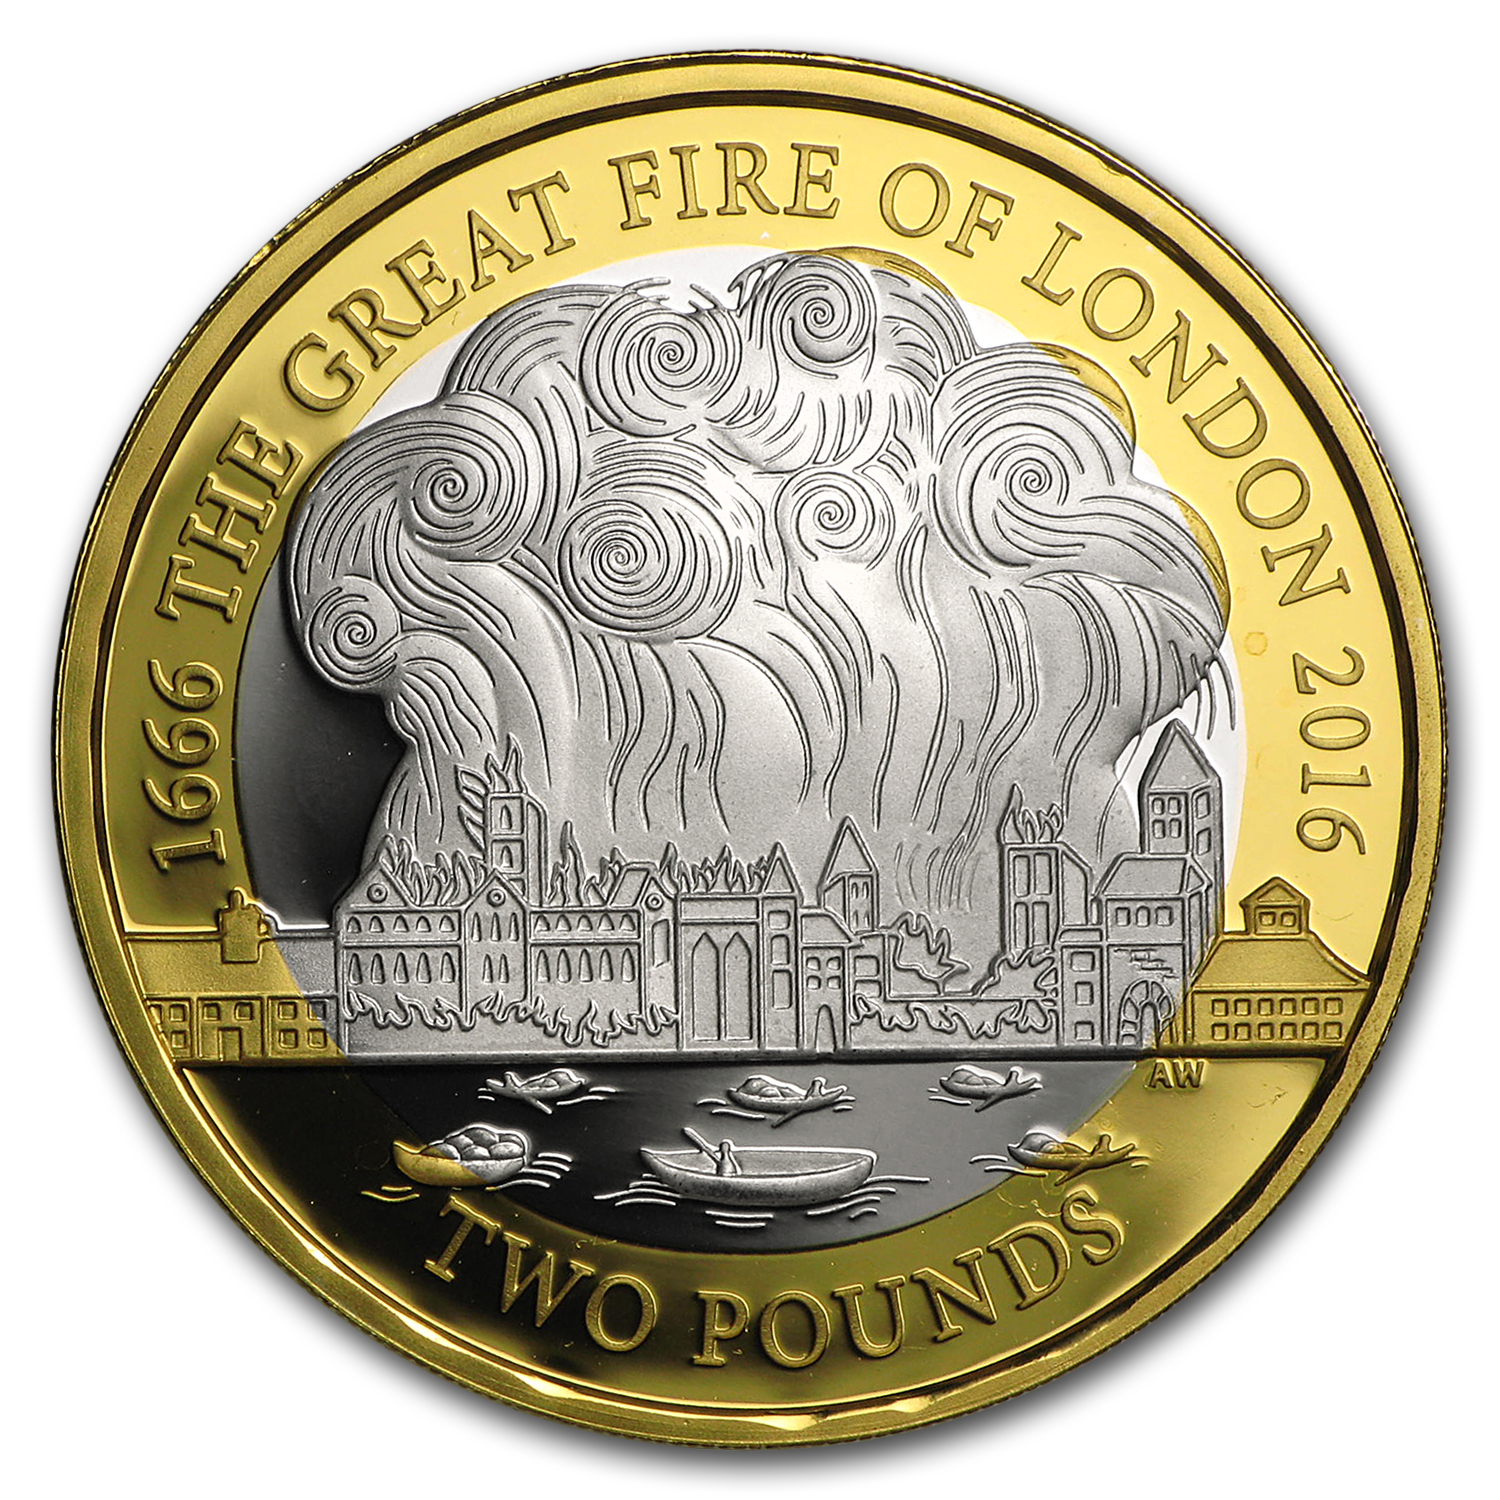 2016 Great Britain 163 2 Silver Great Fire Of London Proof